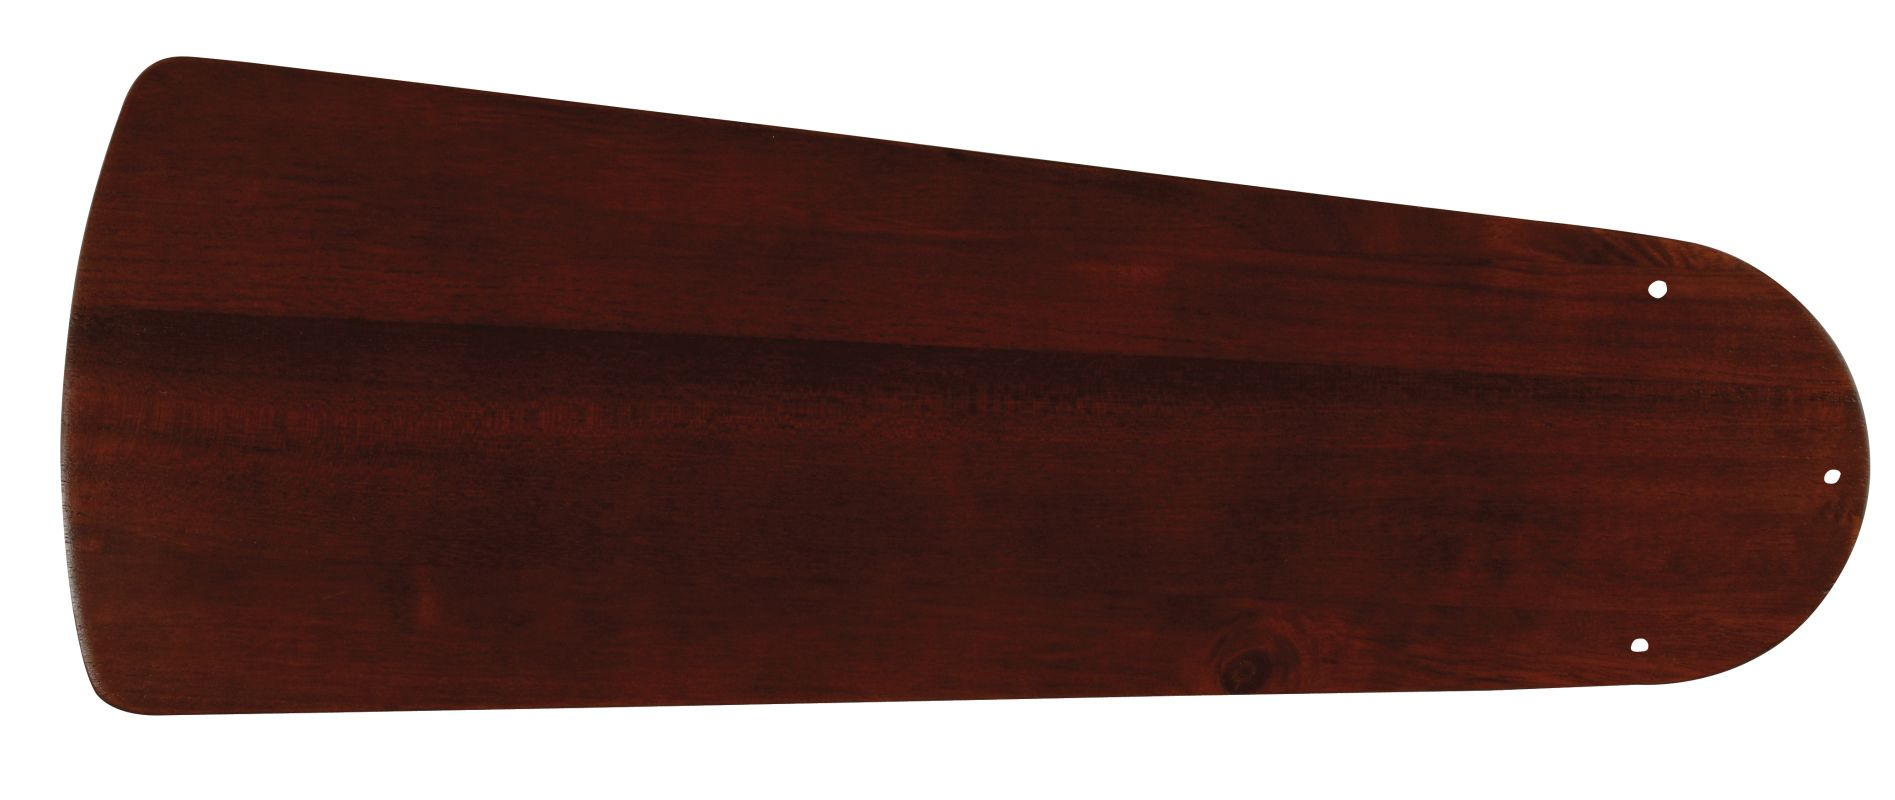 "Craftmade B554P 5 Blade Pack - 54"" Premier Blades Cherry Wood Fan Sale $79.00 ITEM: bci708303 ID#:B554P-CH9 UPC: 647881076634 :"